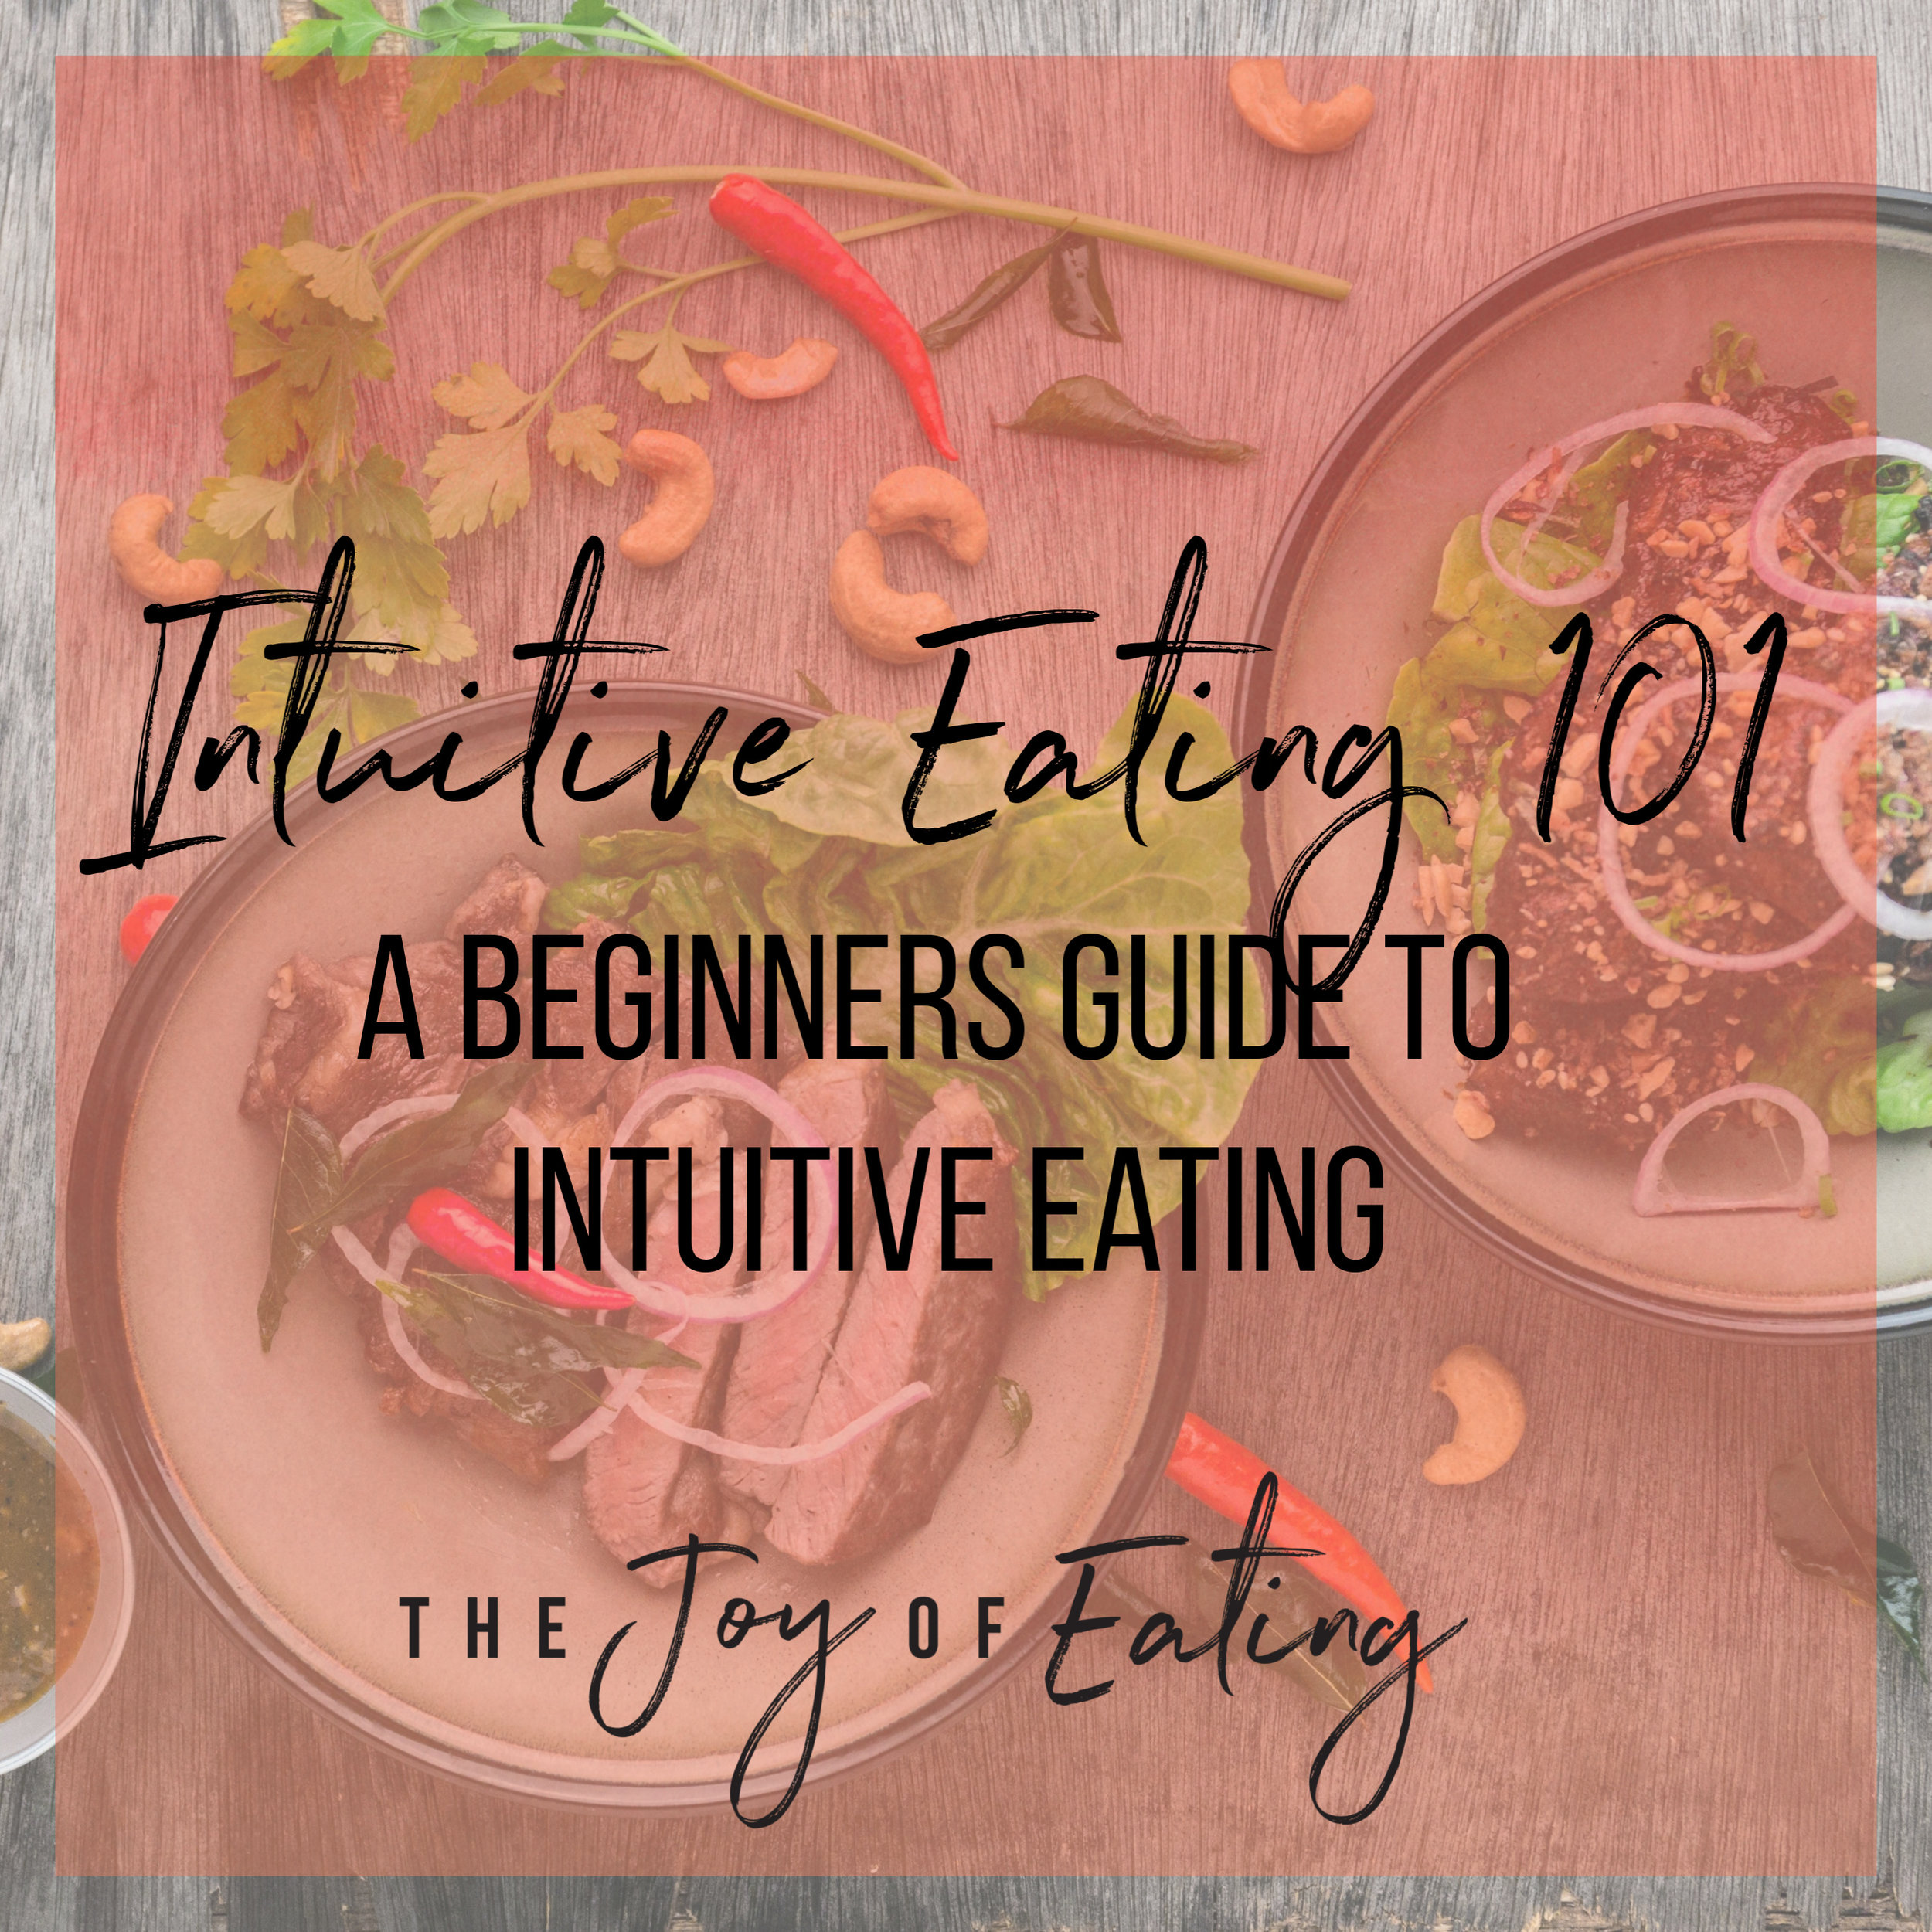 Intuitive Eating 101: A Beginners Guide to Intuitive Eating #intuitiveeating #bodypositive #nutrition #health #wellness